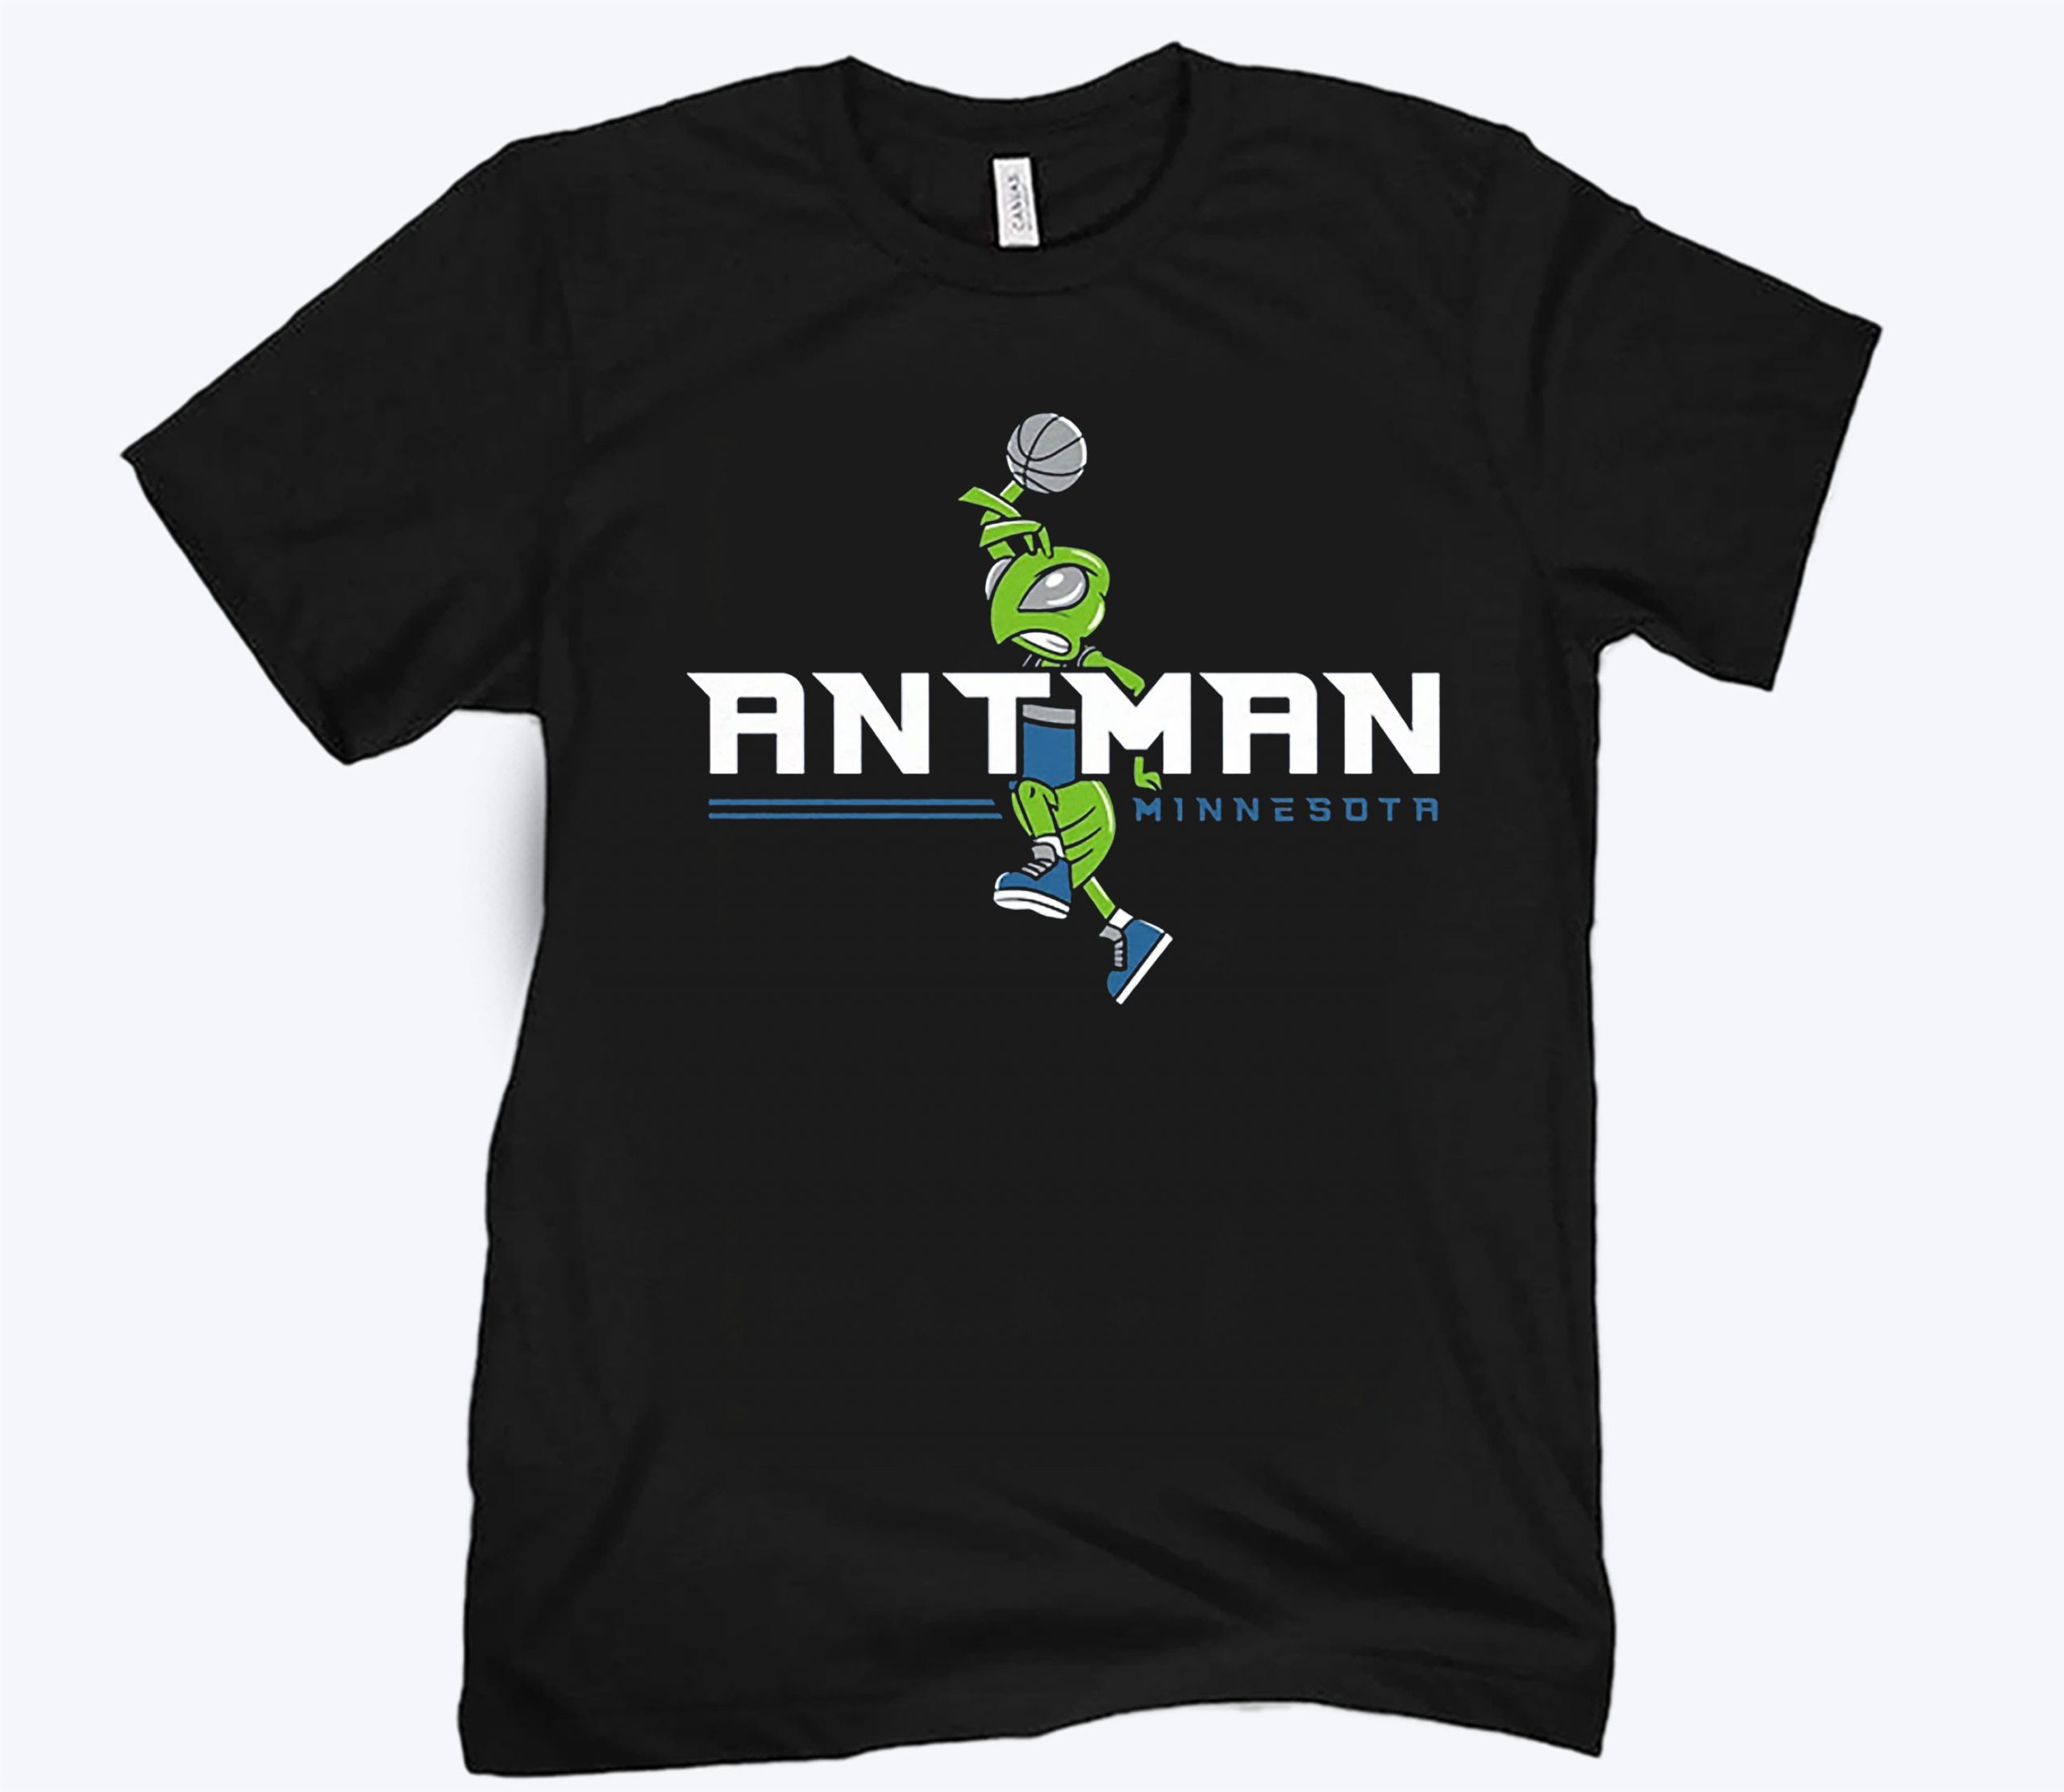 Ant Man Shirt - Minnesota Basketball